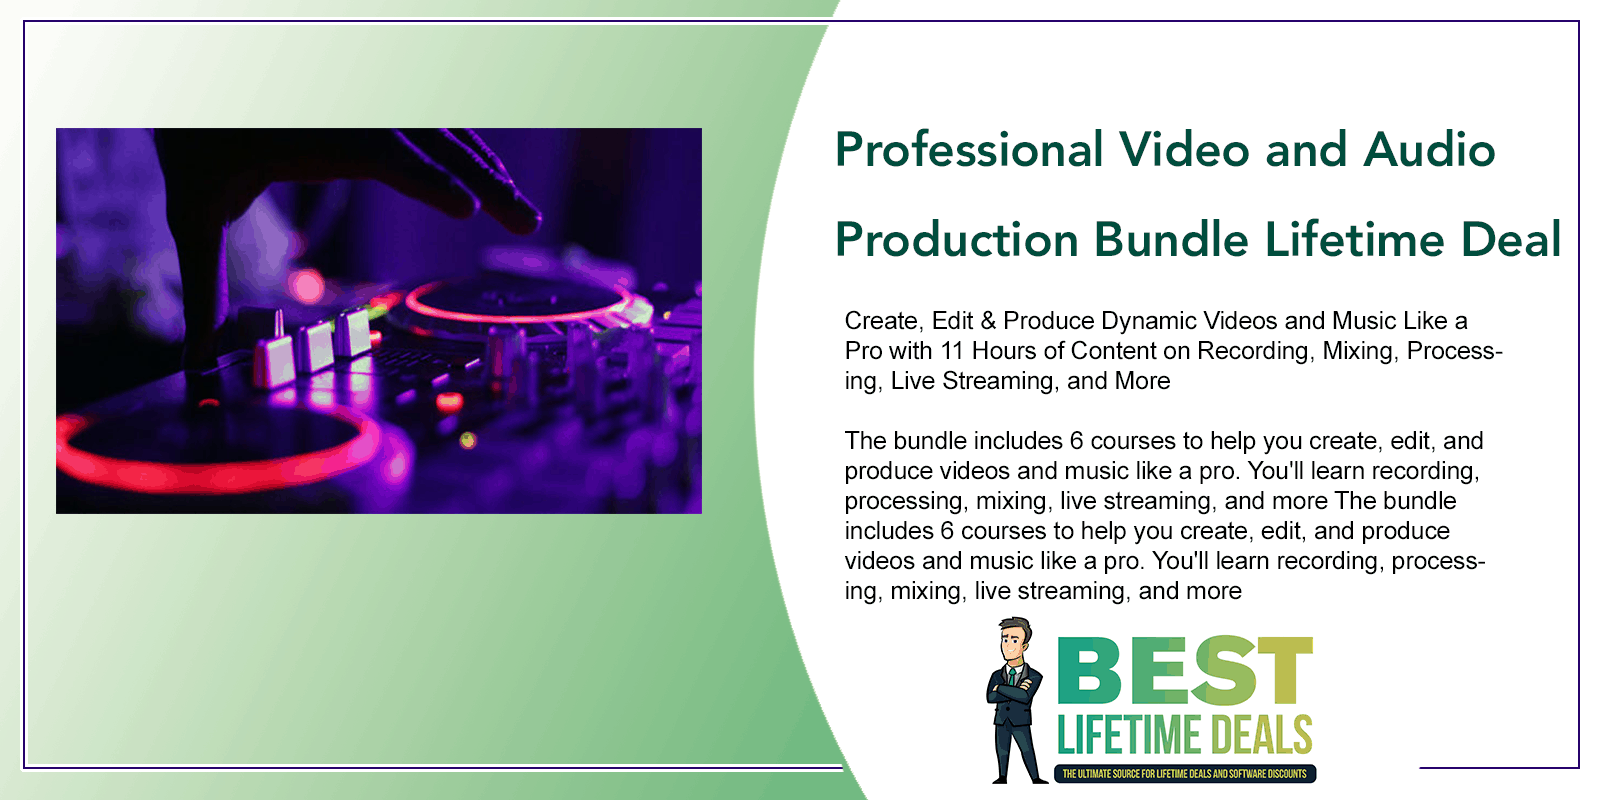 Professional Video and Audio Production Featured Image